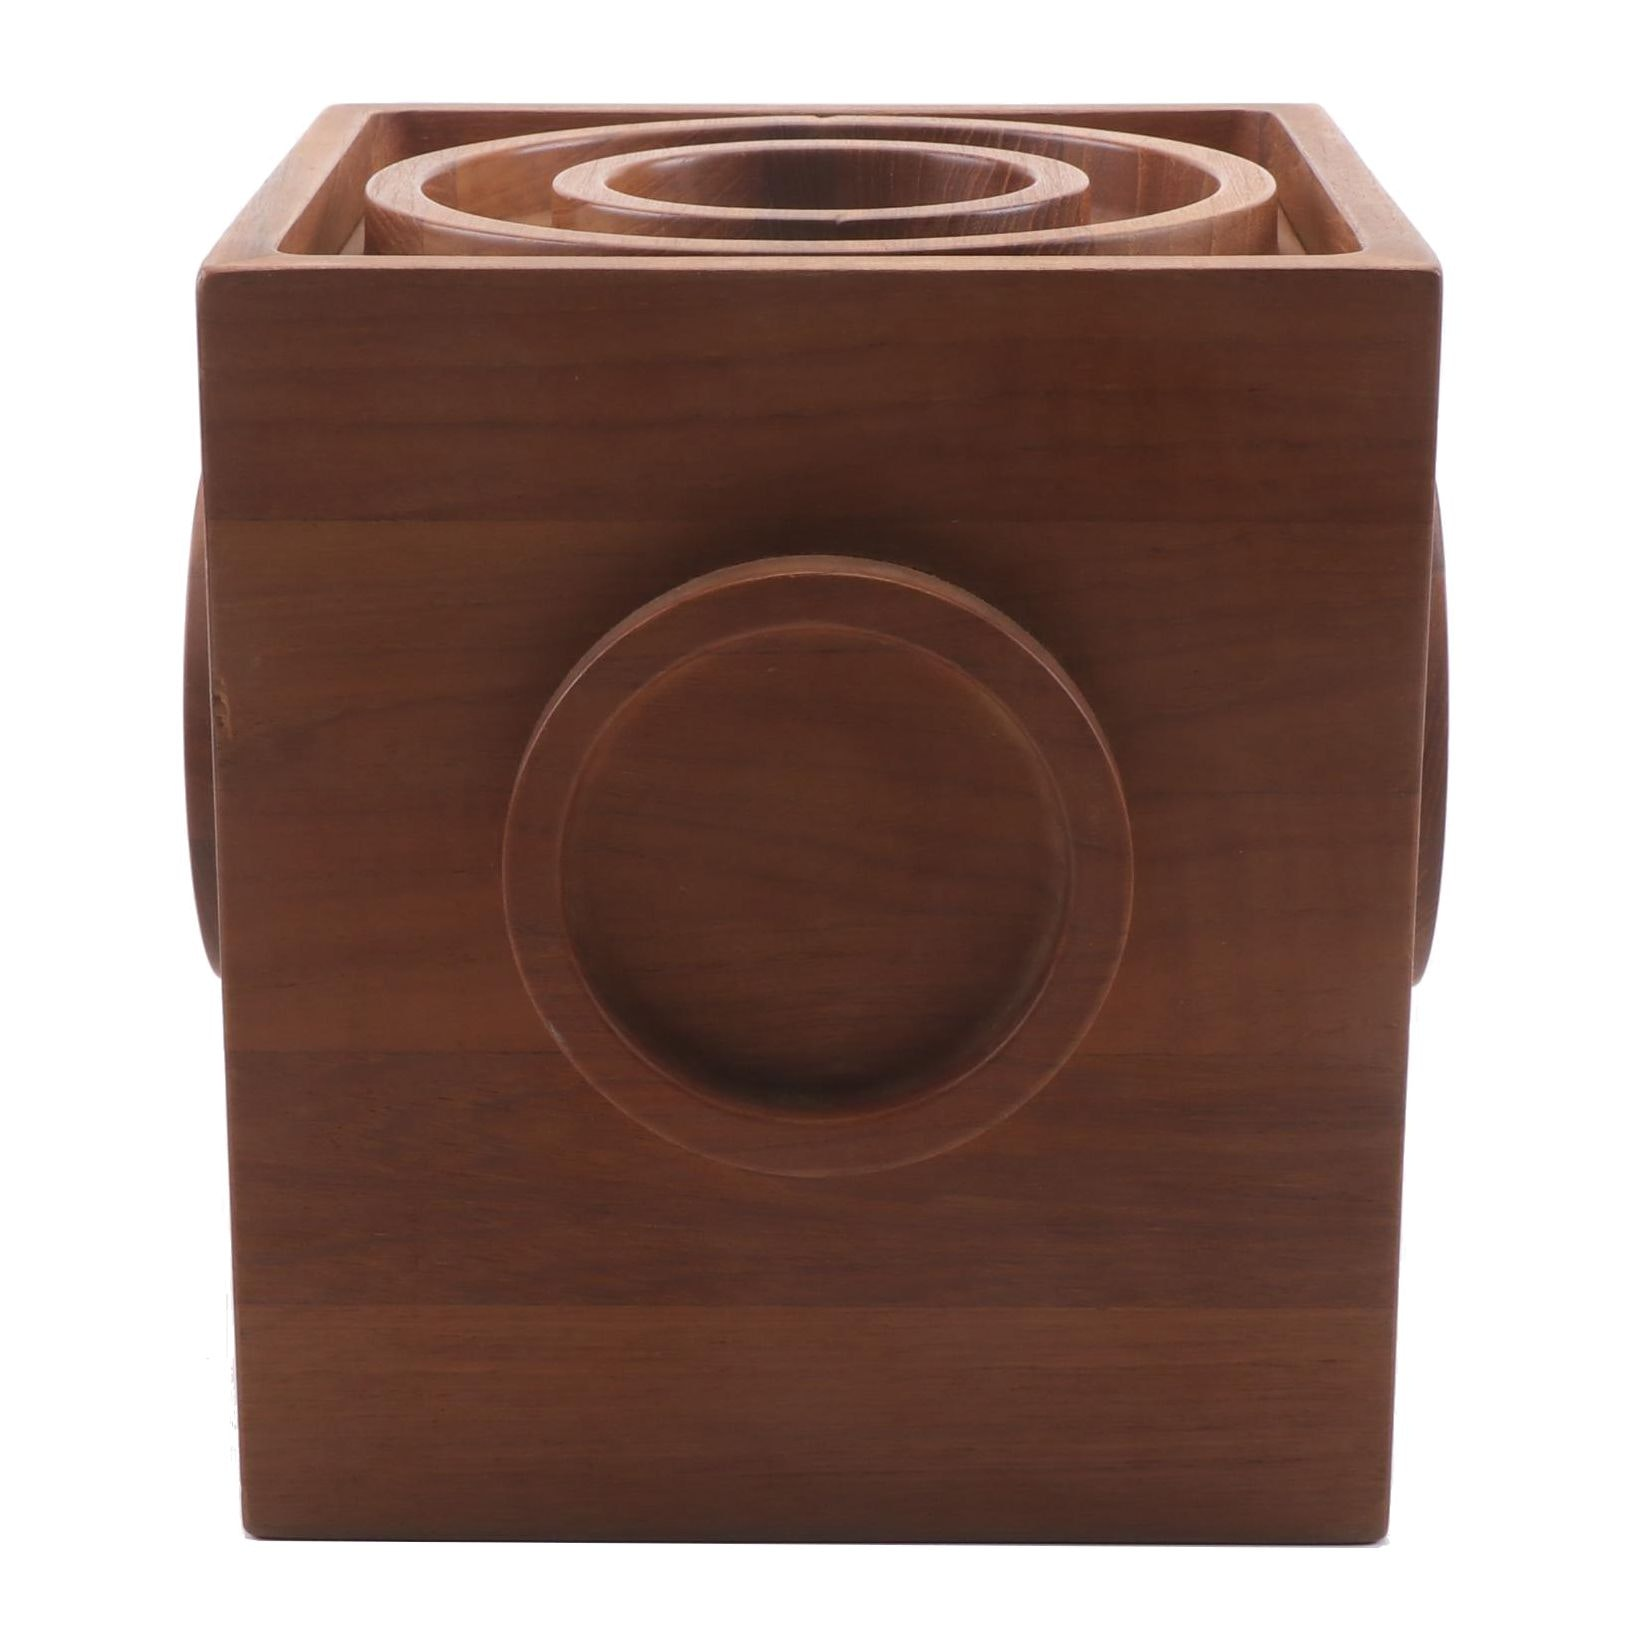 Danish Modern Dansk International Designs IHQ Teak Square Ice Bucket